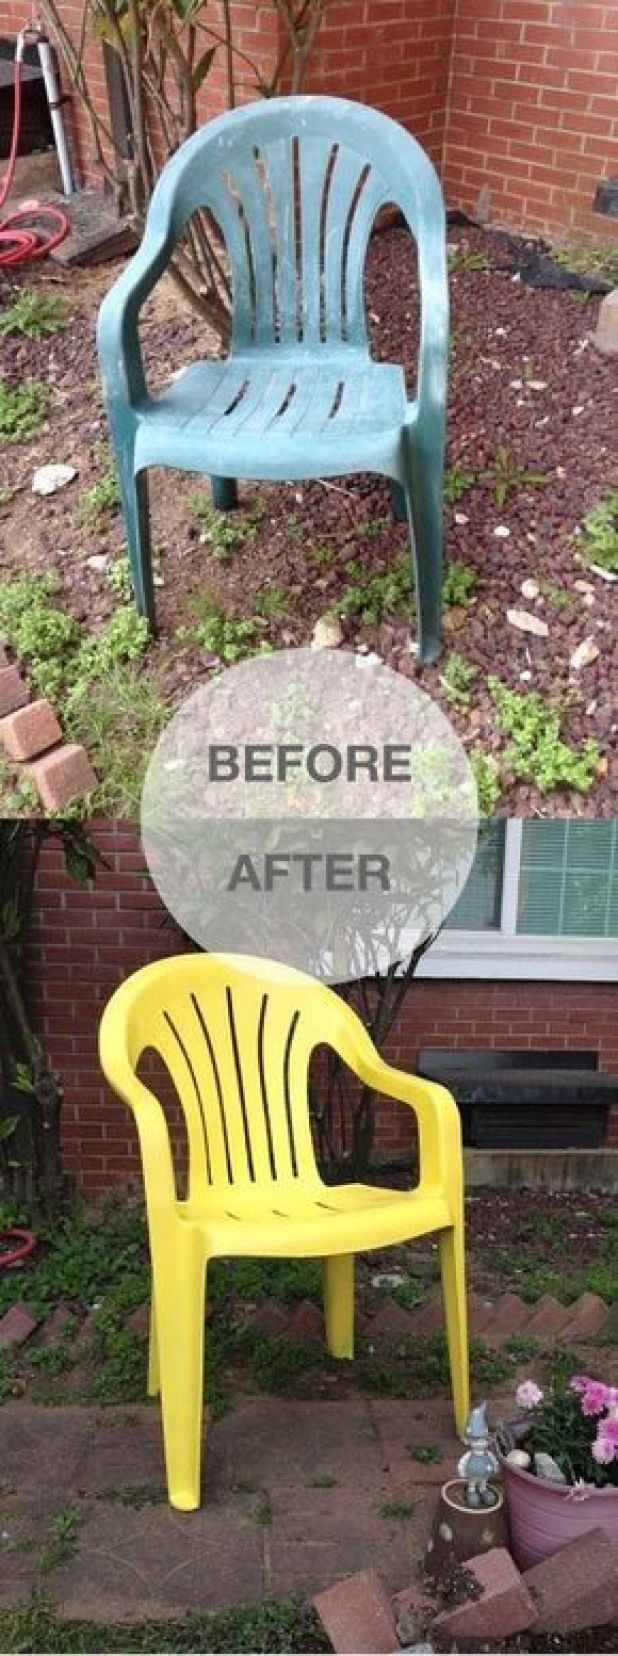 Charmant From Dumpster To Delightful In 6 Easy Steps Spray Paint